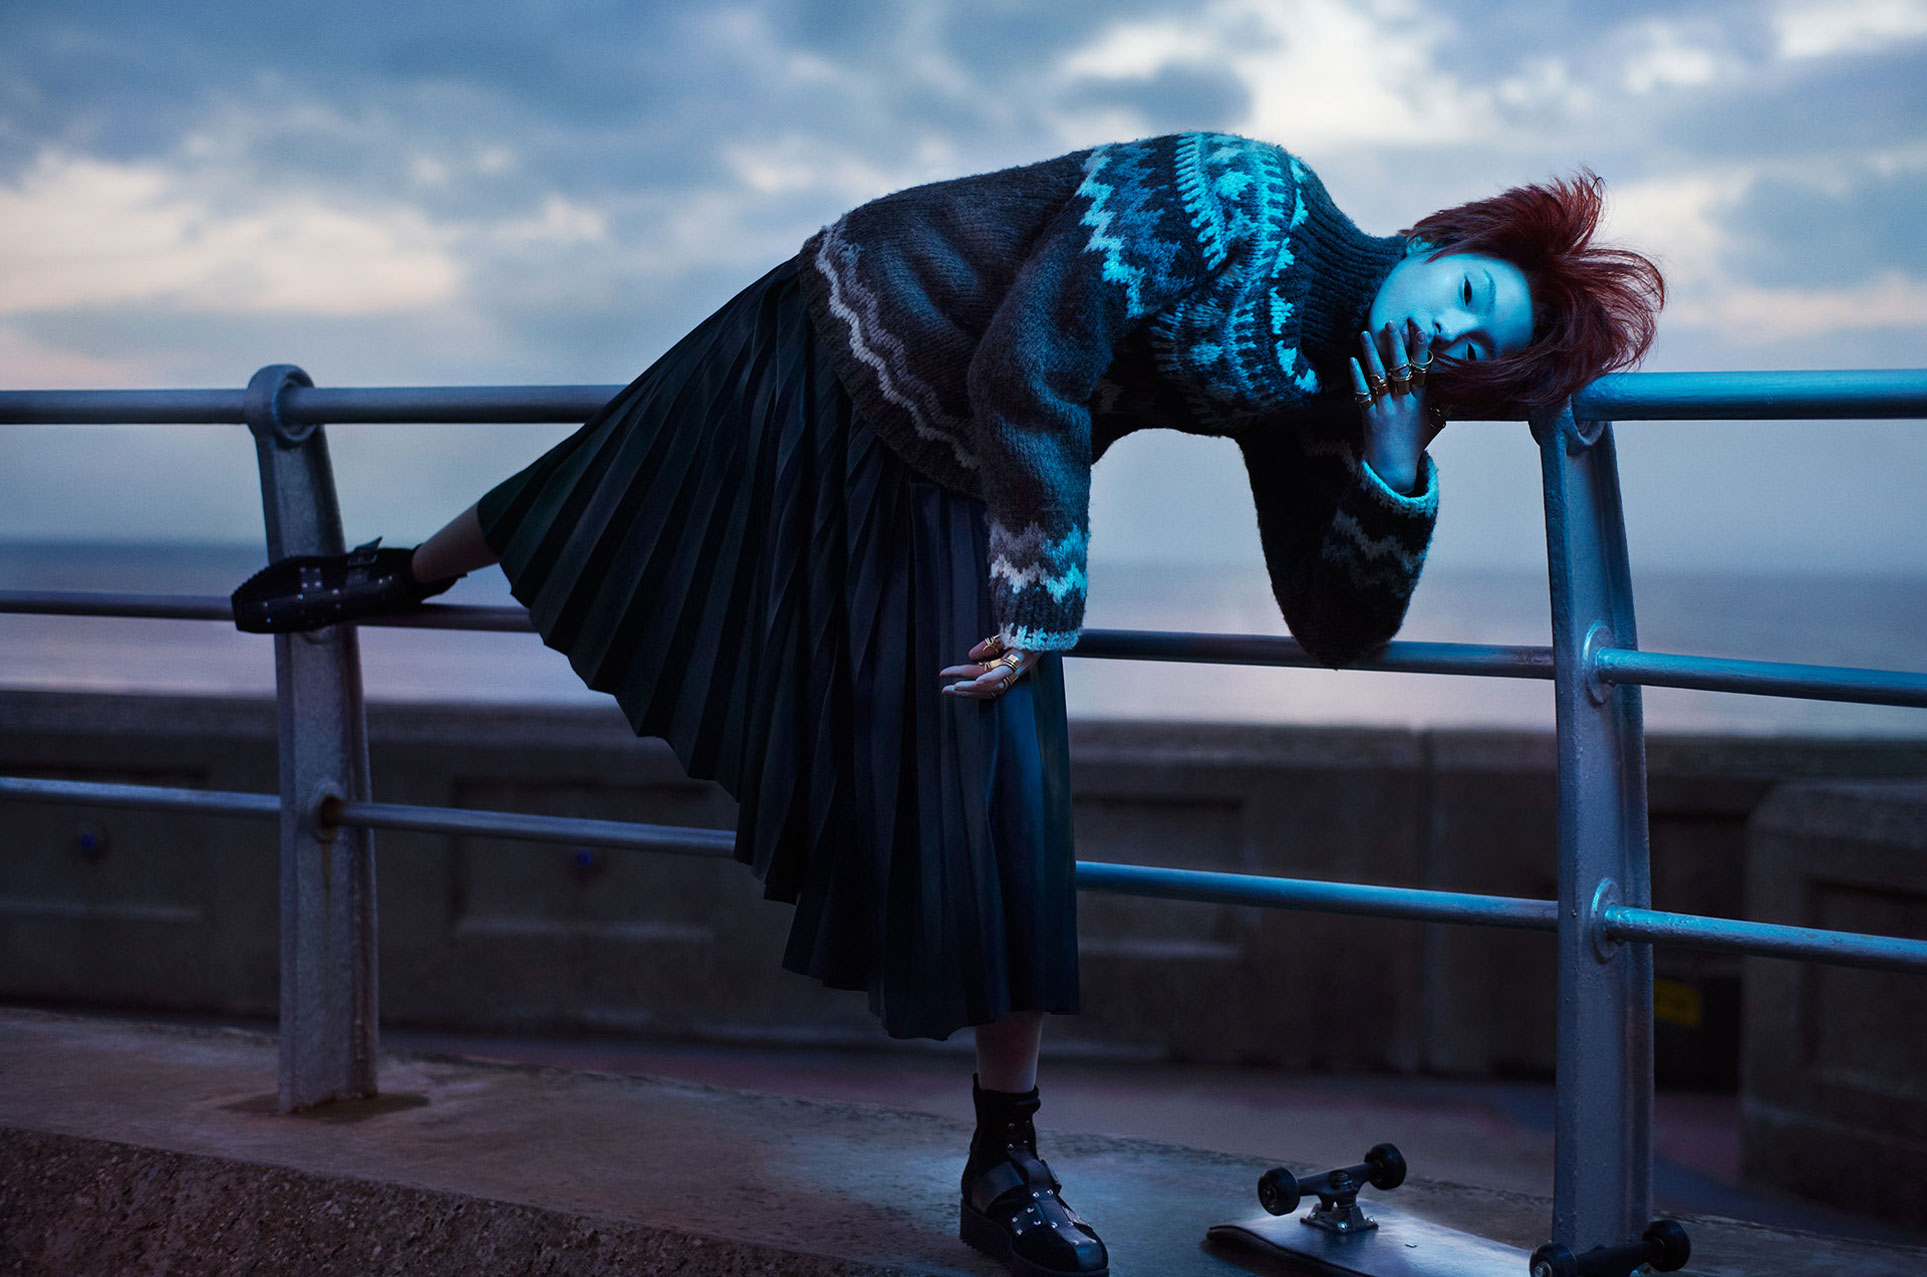 Be A Chameleon Fit In Anywhere Be A Rockstar Stand Out Everywhere / Xiao Wen Ju and Yue Ning by Solve Sundsbo / i-D Magazine